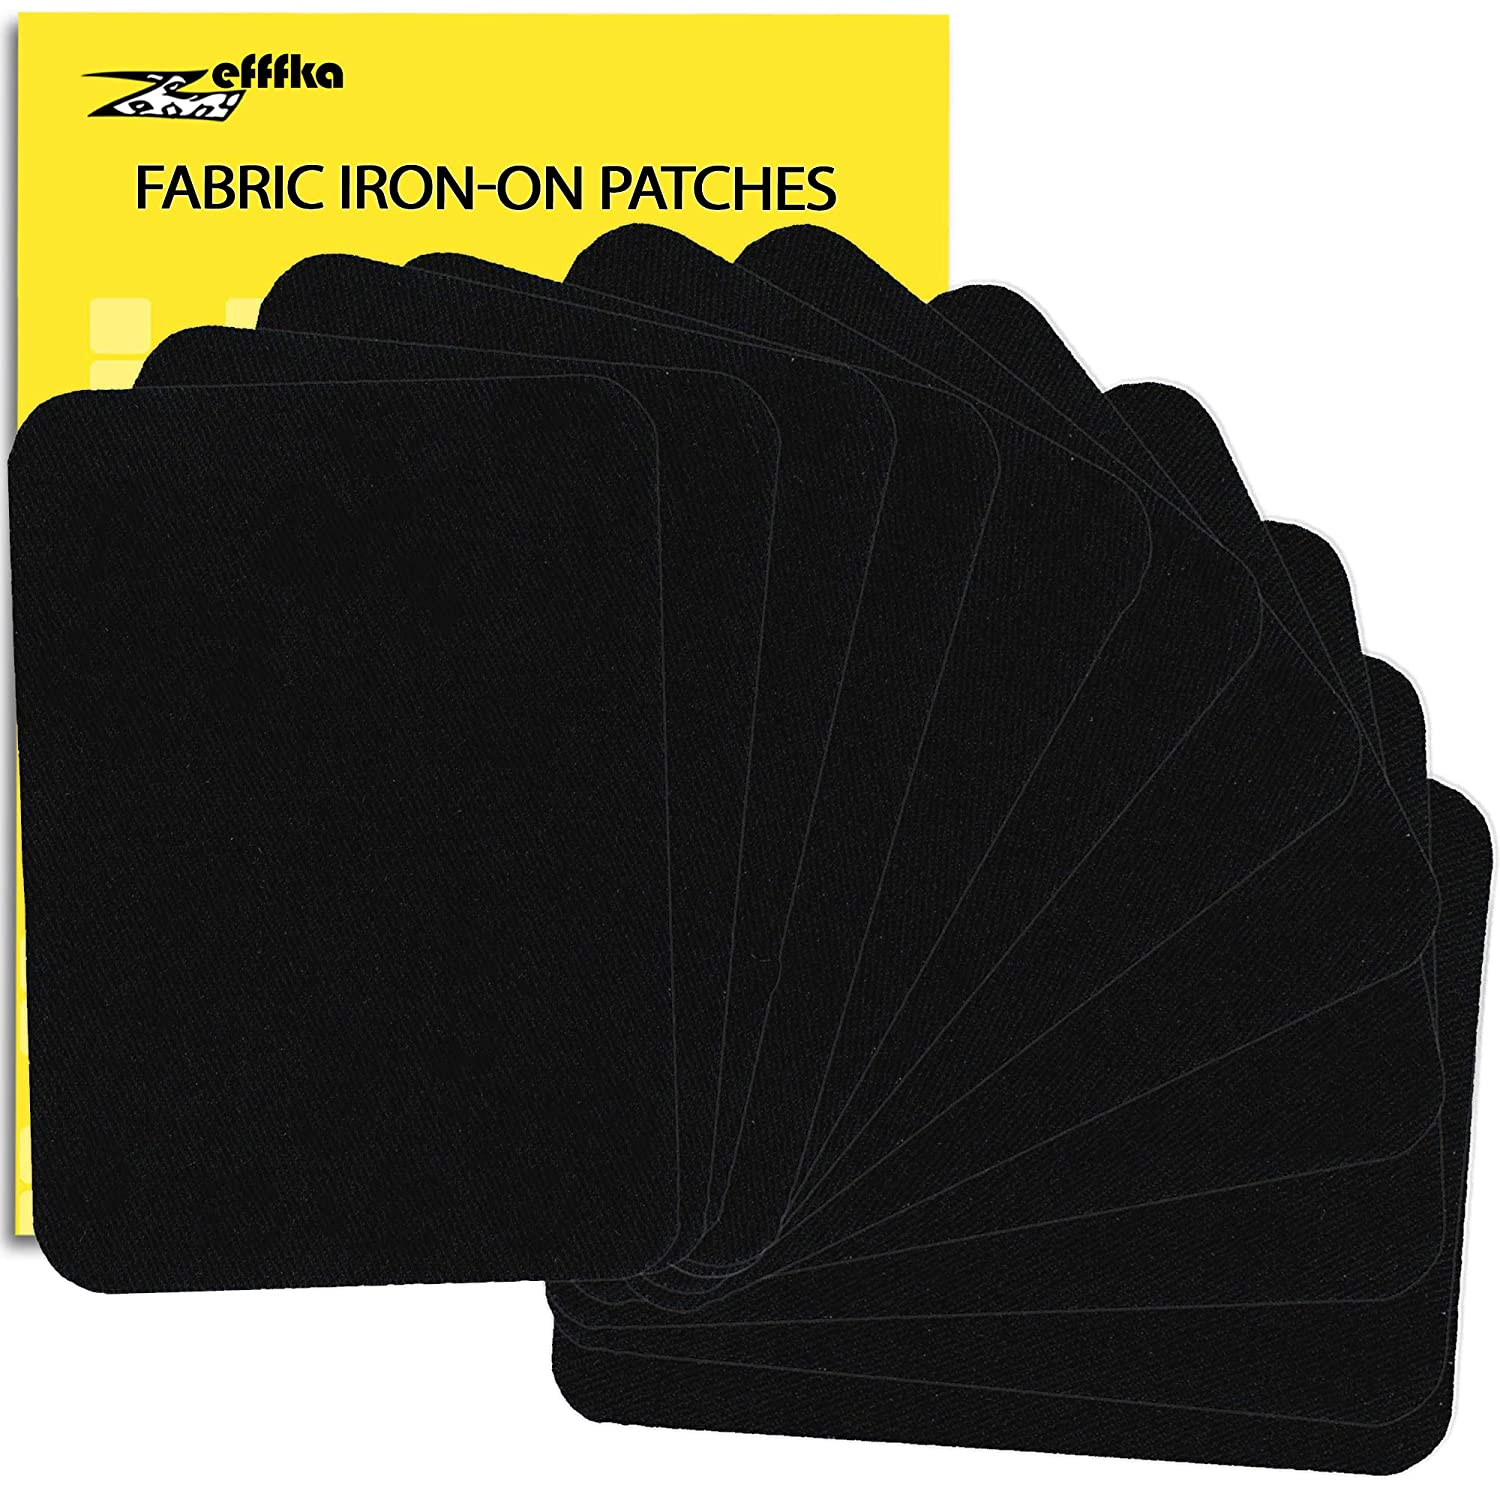 ZEFFFKA Premium Quality Fabric Iron On Patches Deep Black 12 Pieces 100% Cotton Repair Kit 3 by 4-1/4